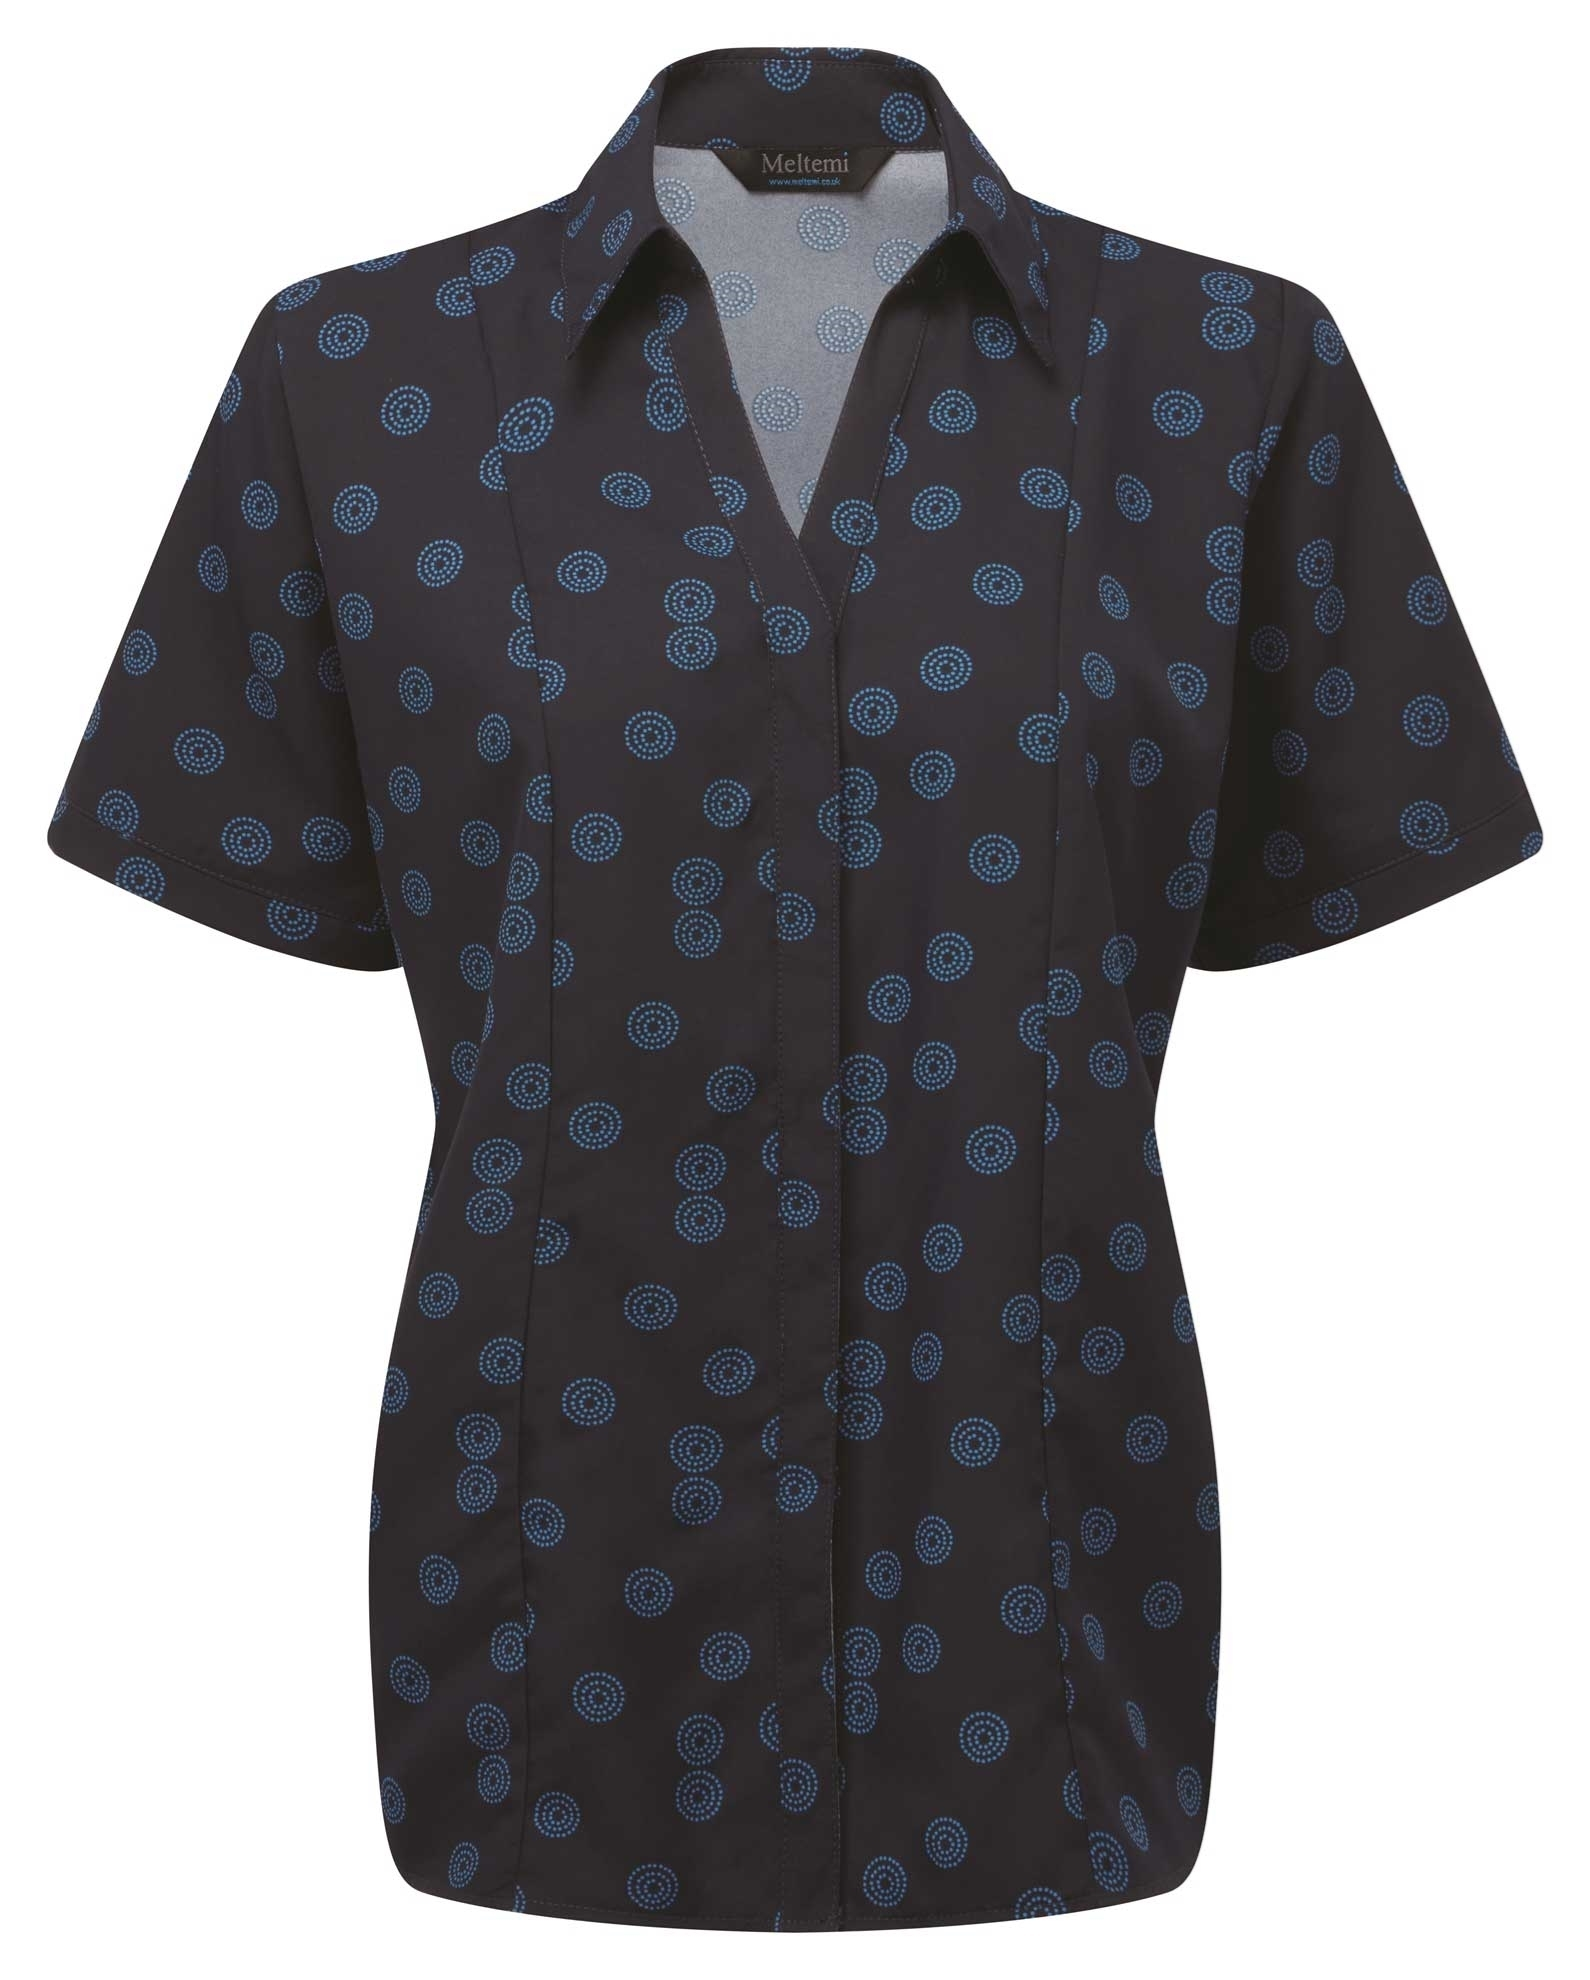 Picture of Semi-Fitted CoolWeave Blouse - Navy/Blue Sienna Print